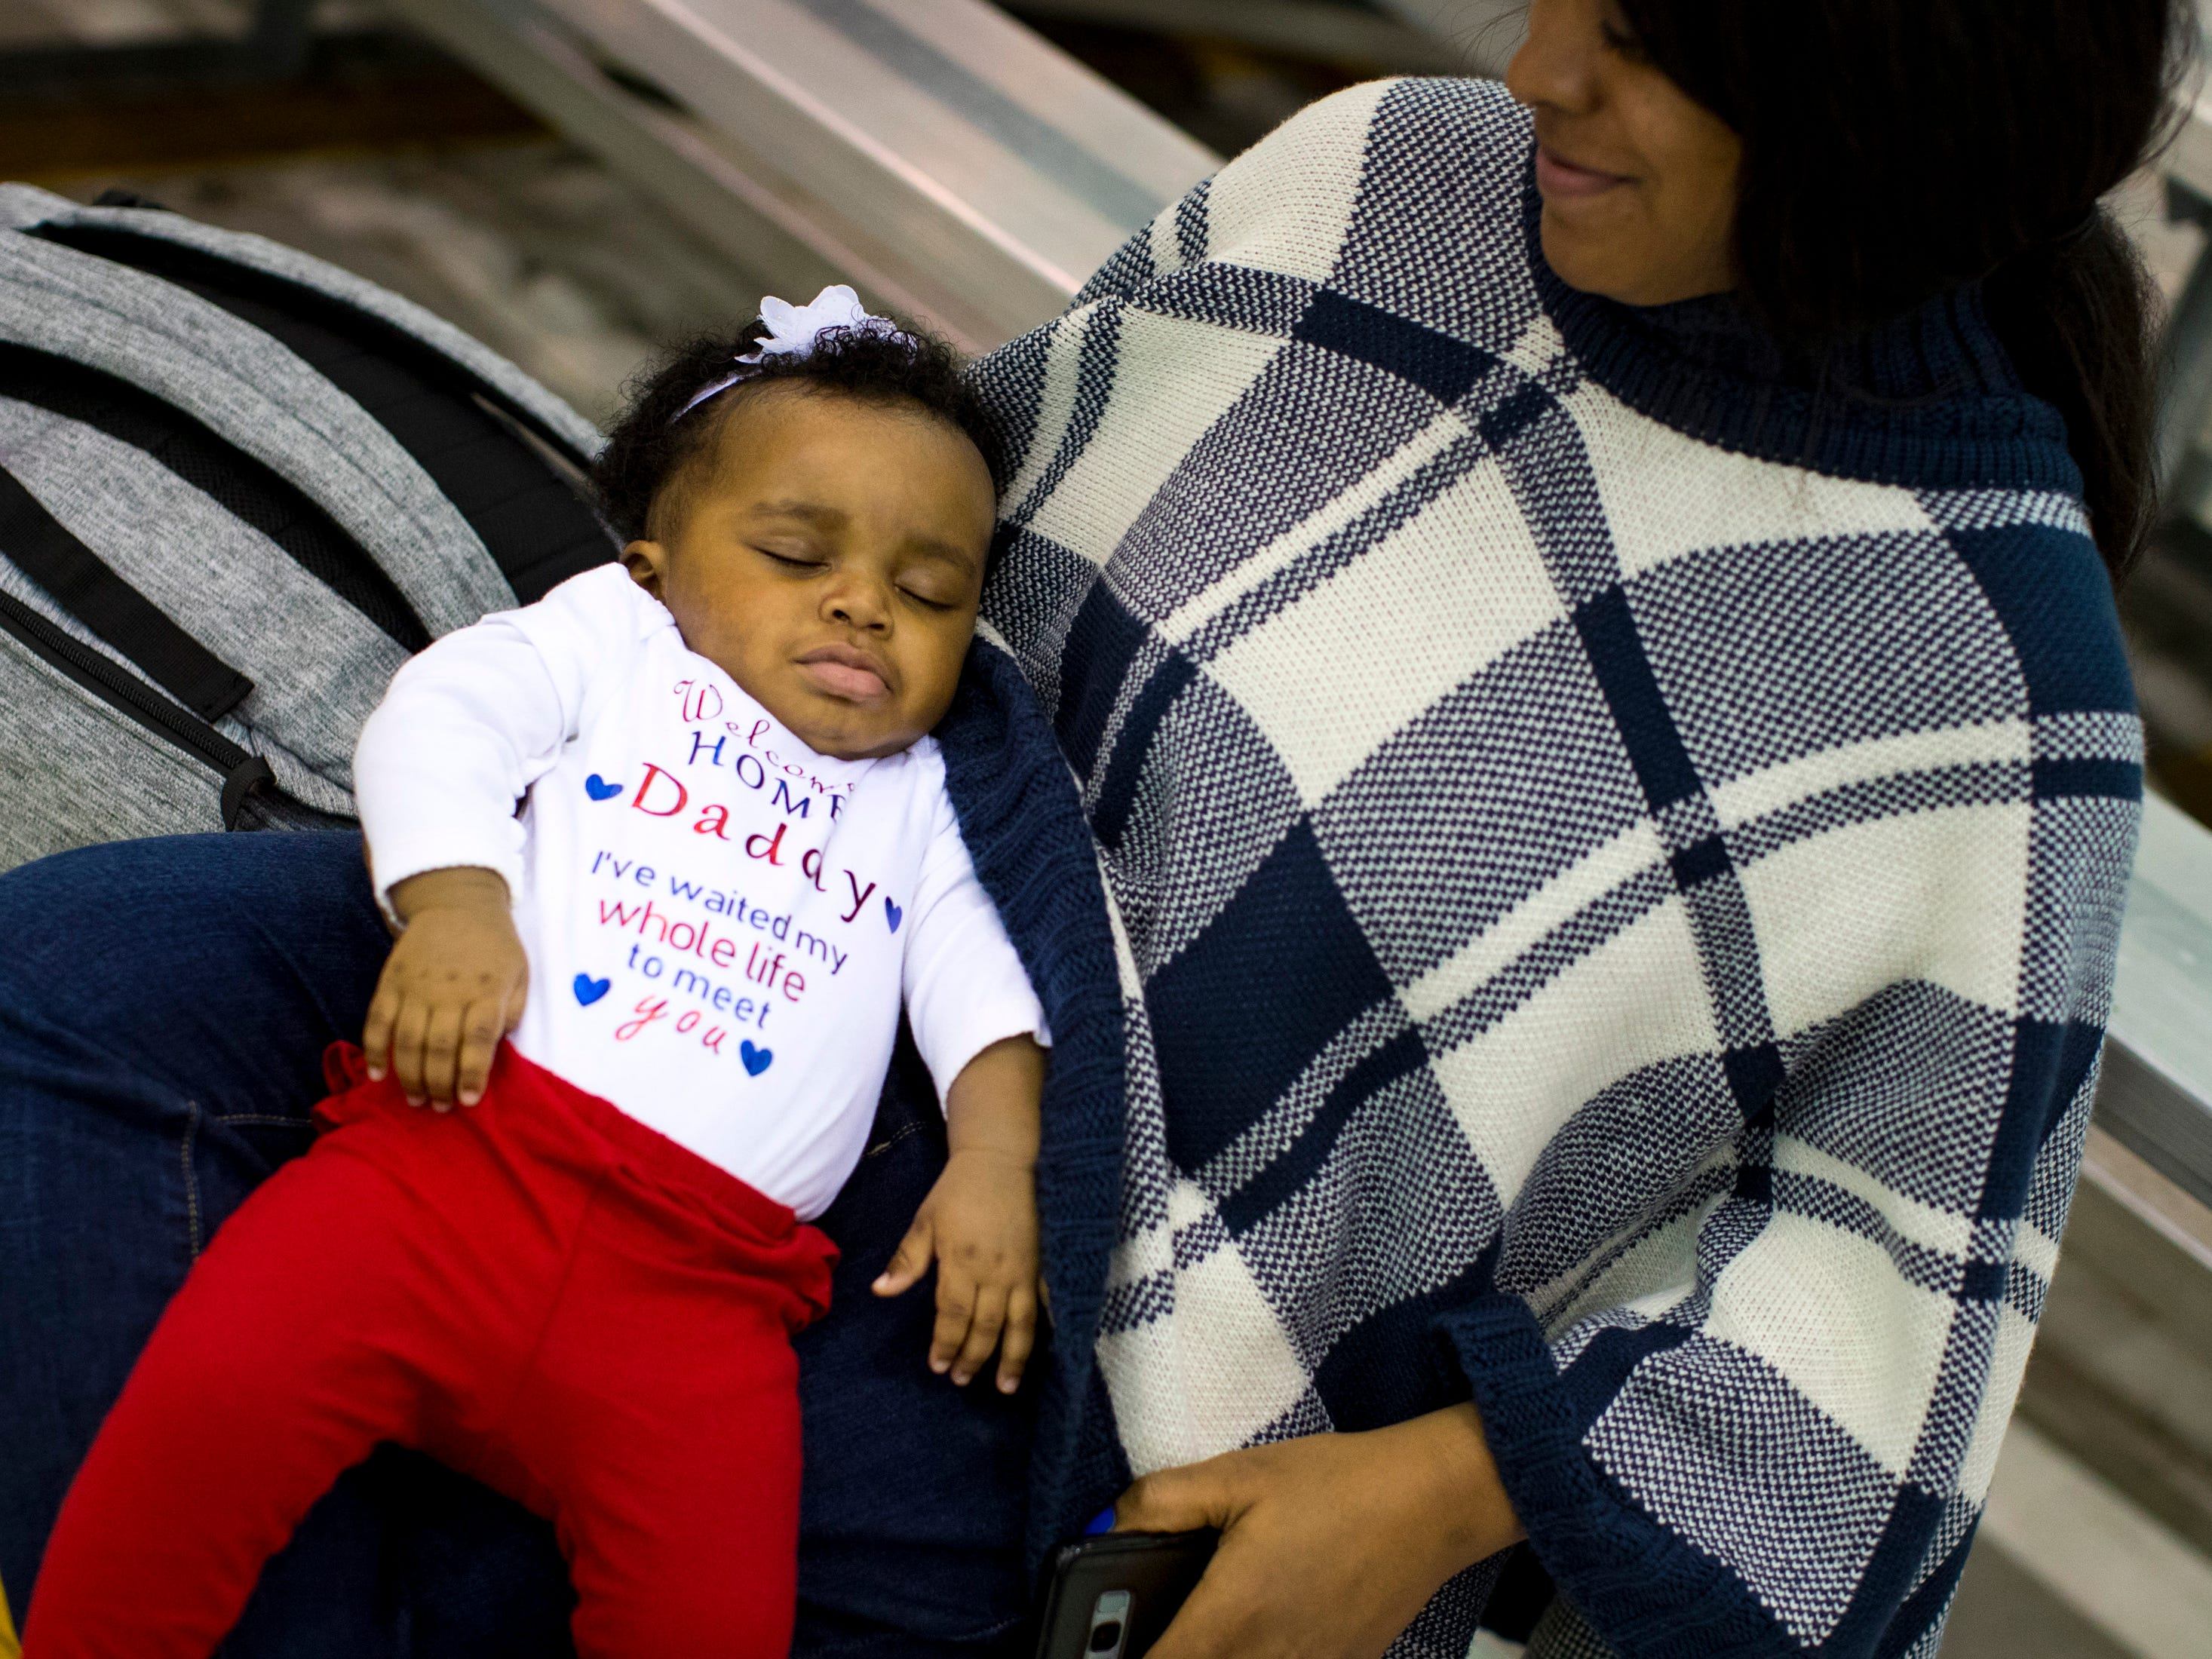 Aleighsia Hollis, 7 months, takes a nap while waiting for her father, Staff Sgt. Wayne Hollis, to arrive during the welcome home ceremony for members of the 101st Combat Aviation Brigade at Fort Campbell in Clarksville on Tuesday, Feb. 5, 2019. The soldiers were returning from a nine-month deployment to Afghanistan.